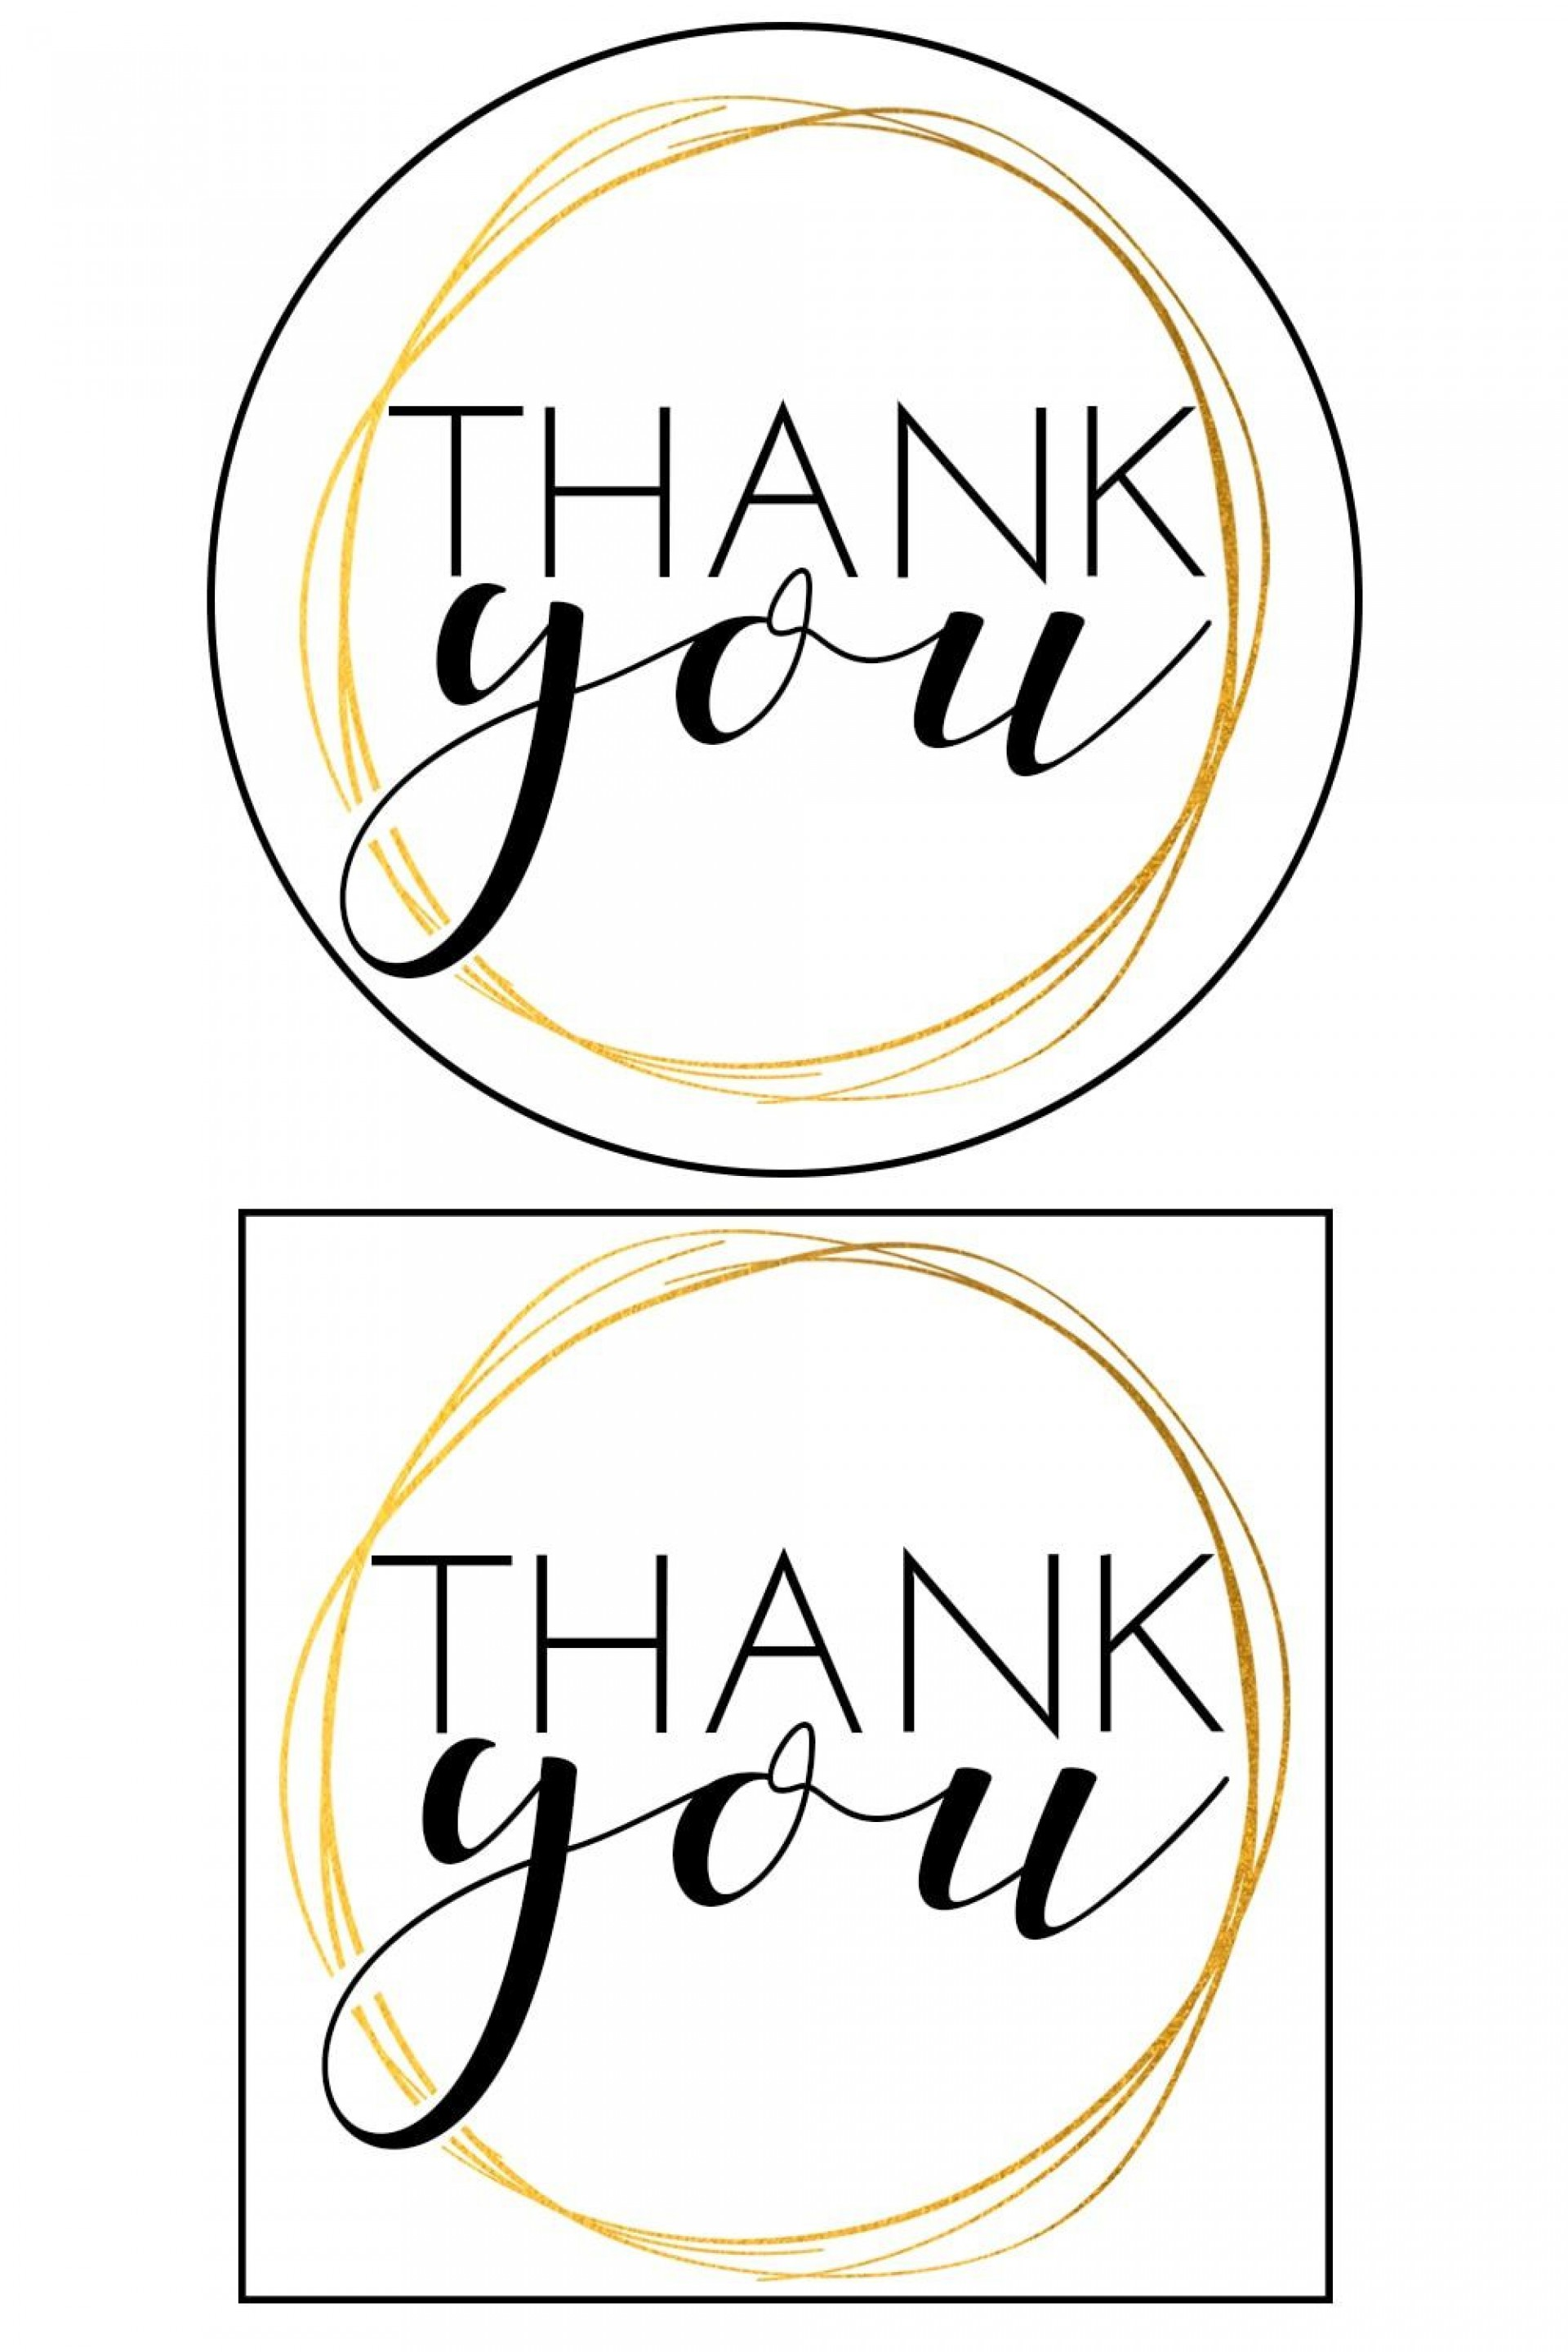 010 Awful Free Printable Thank You Gift Tag Template Sample  Templates1920